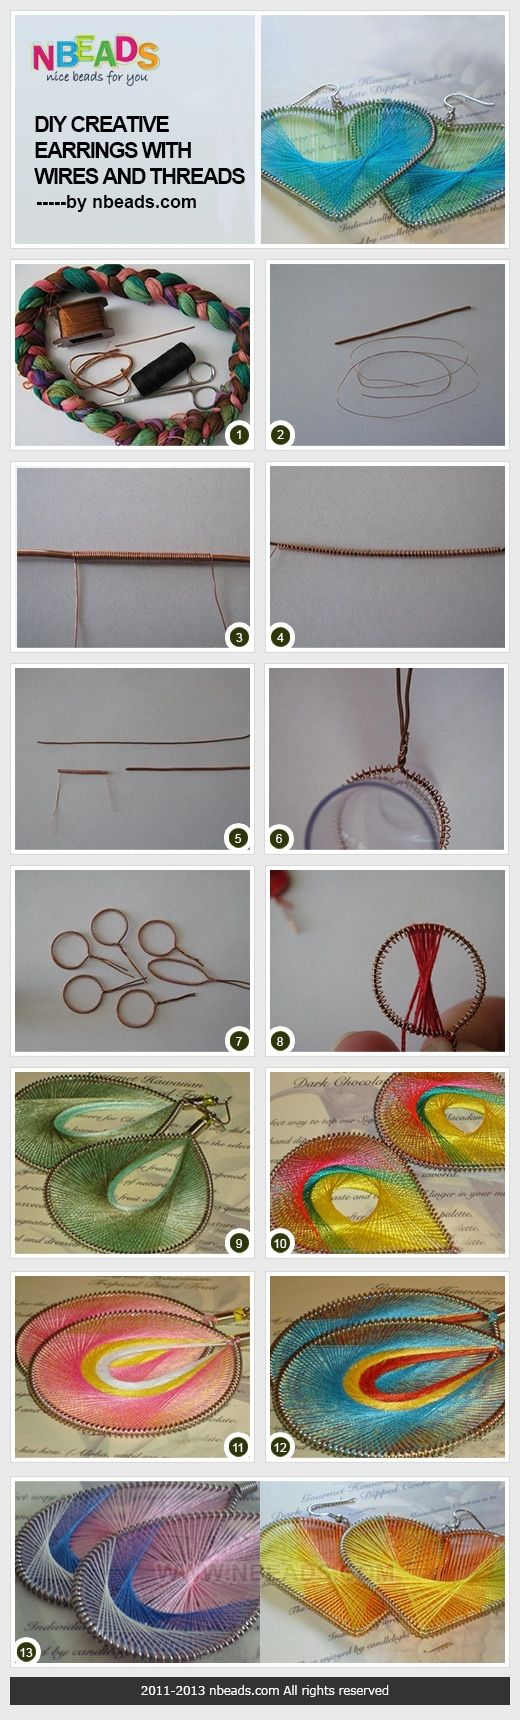 DIY Creative Earrings with Wires And Threads – Nbeads